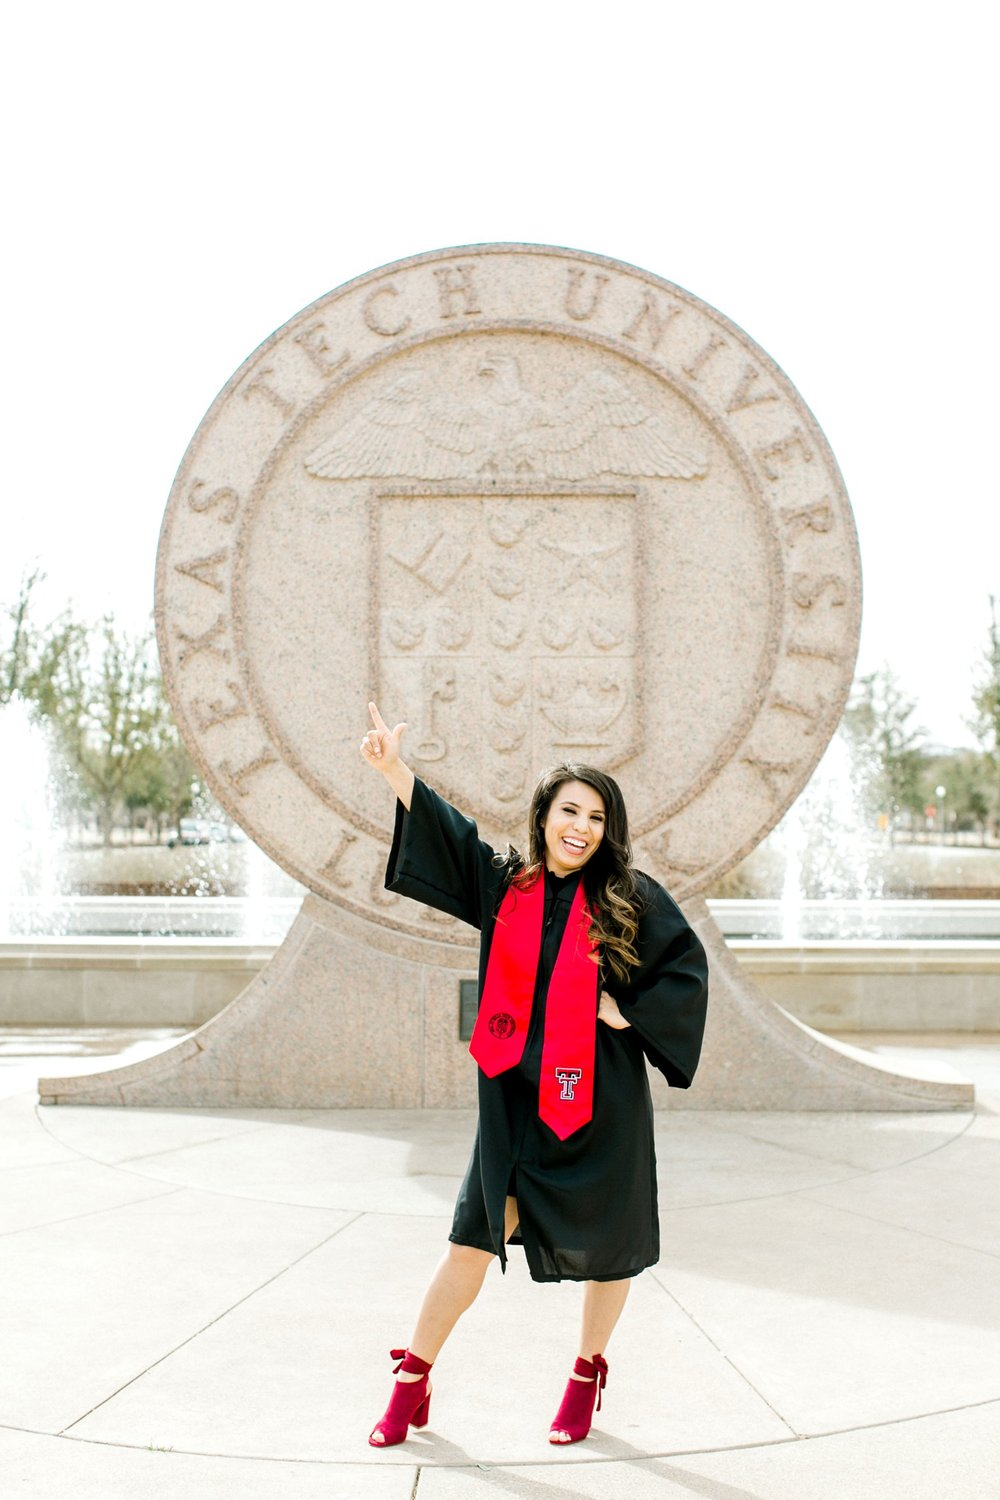 Desirae-morales-texas-tech-university-senior-photography_0026.jpg